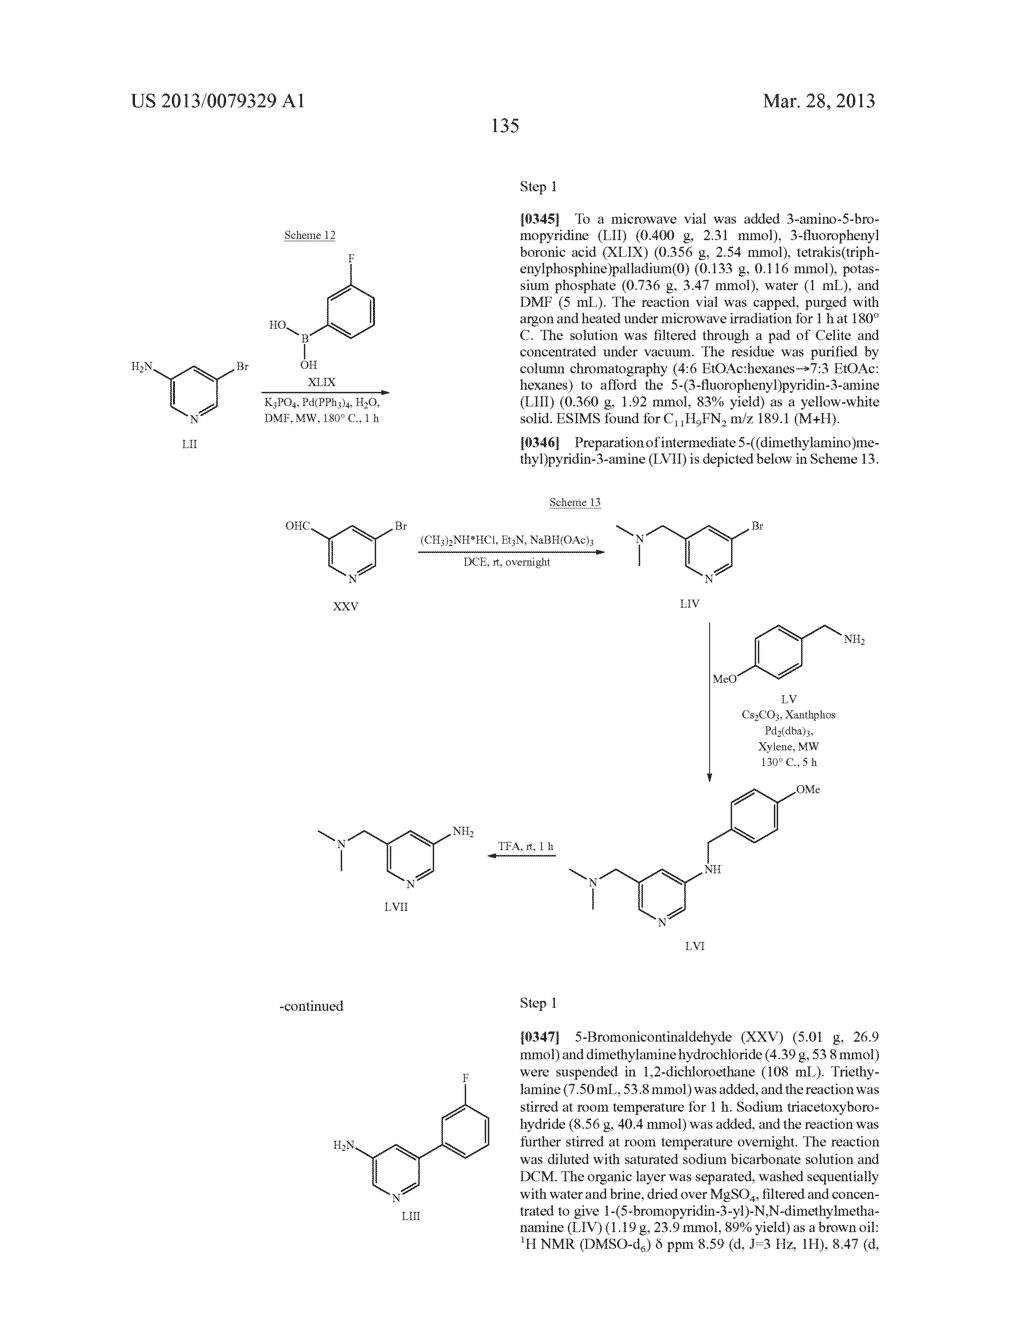 INDAZOLE-3-CARBOXAMIDES AND THEIR USE AS WNT/Beta-CATENIN SIGNALING     PATHWAY INHIBITORS - diagram, schematic, and image 136